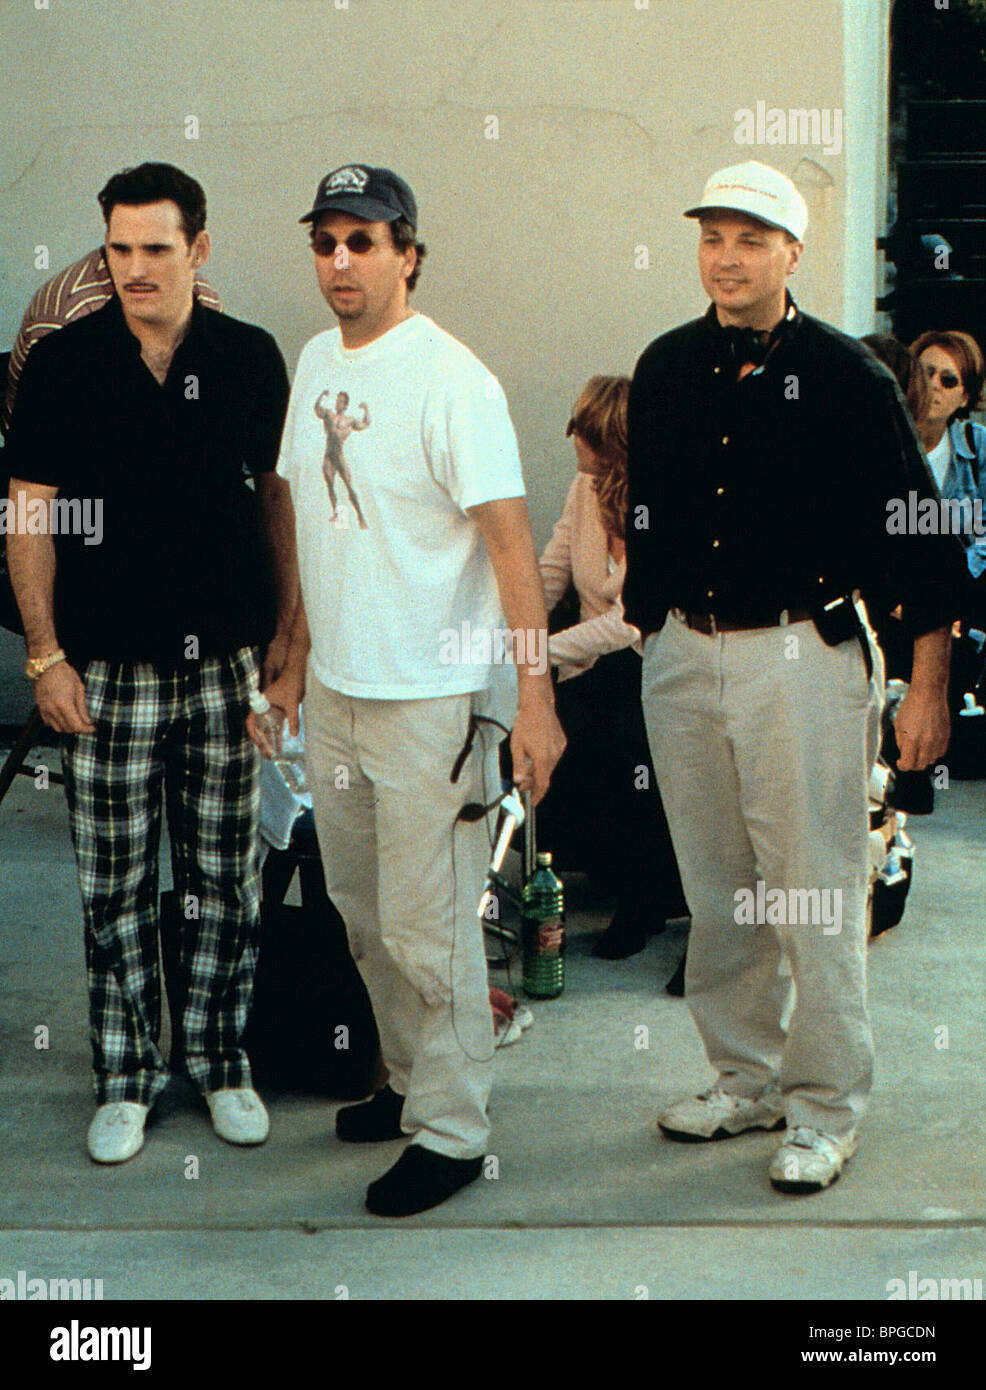 MATT DILLON PETER FARRELLY BOBBY FARRELLY THERE'S SOMETHING ABOUT MARY (1998) Stock Photo